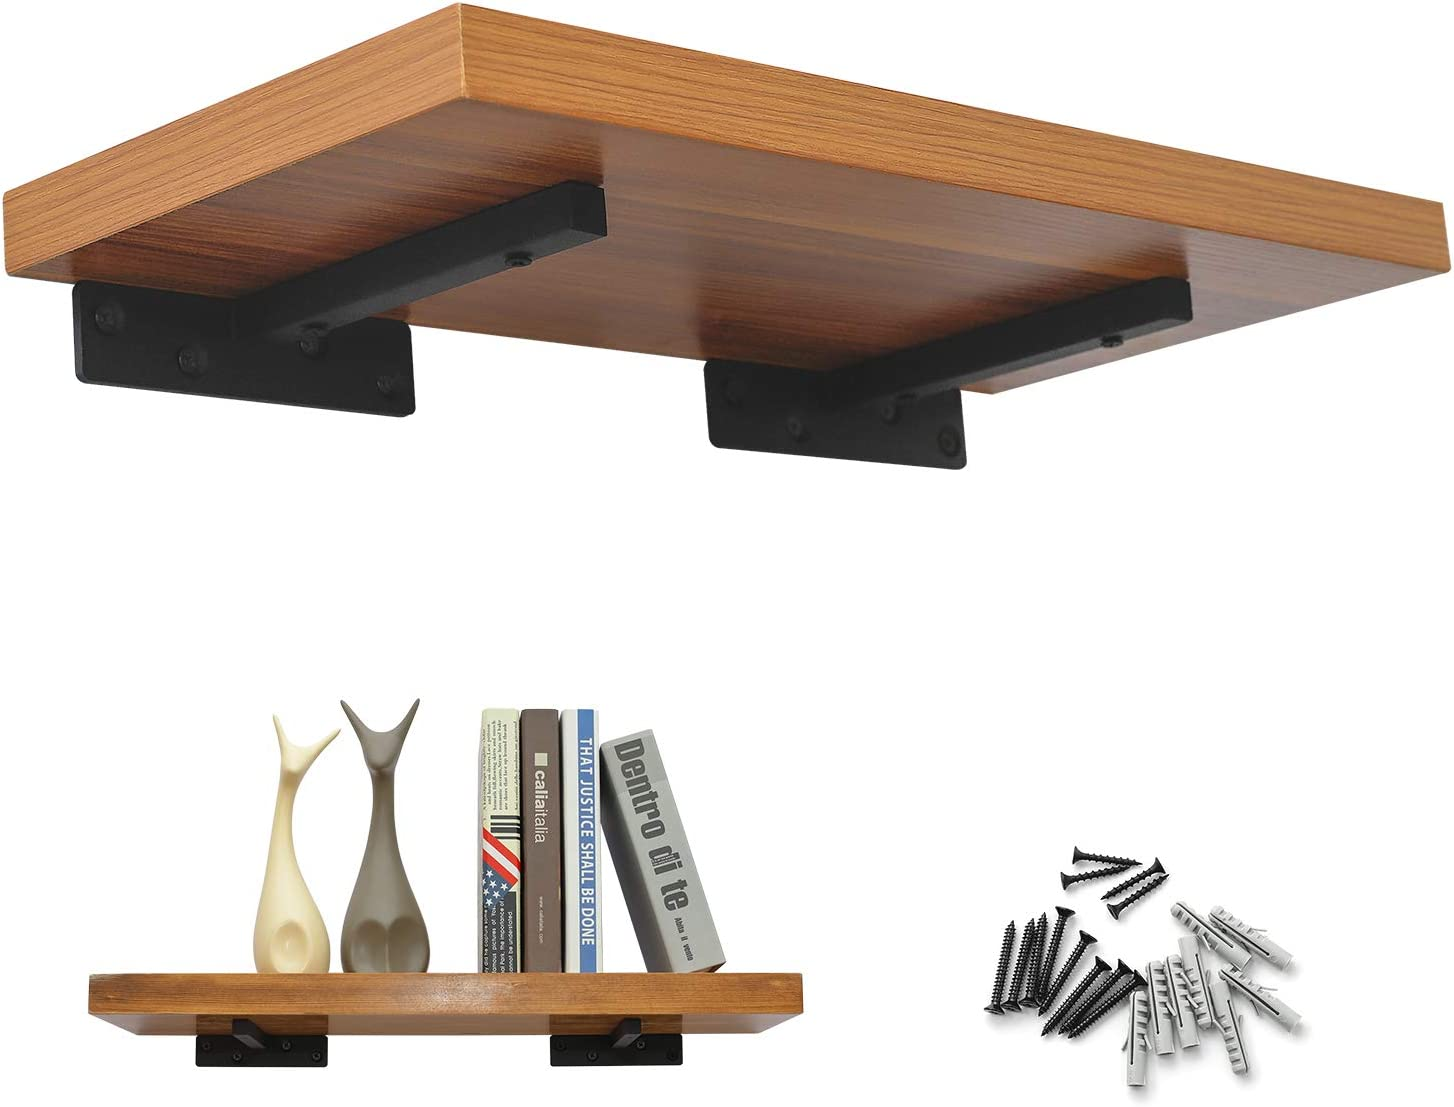 Floating Shelves with Brackets Wall Mount, Heavy Duty Wood Shelving with Metal Hardware, Rustic Hanging Shelf Decoration for Livling Room, Kitchen and Office, 8 Inch Deep